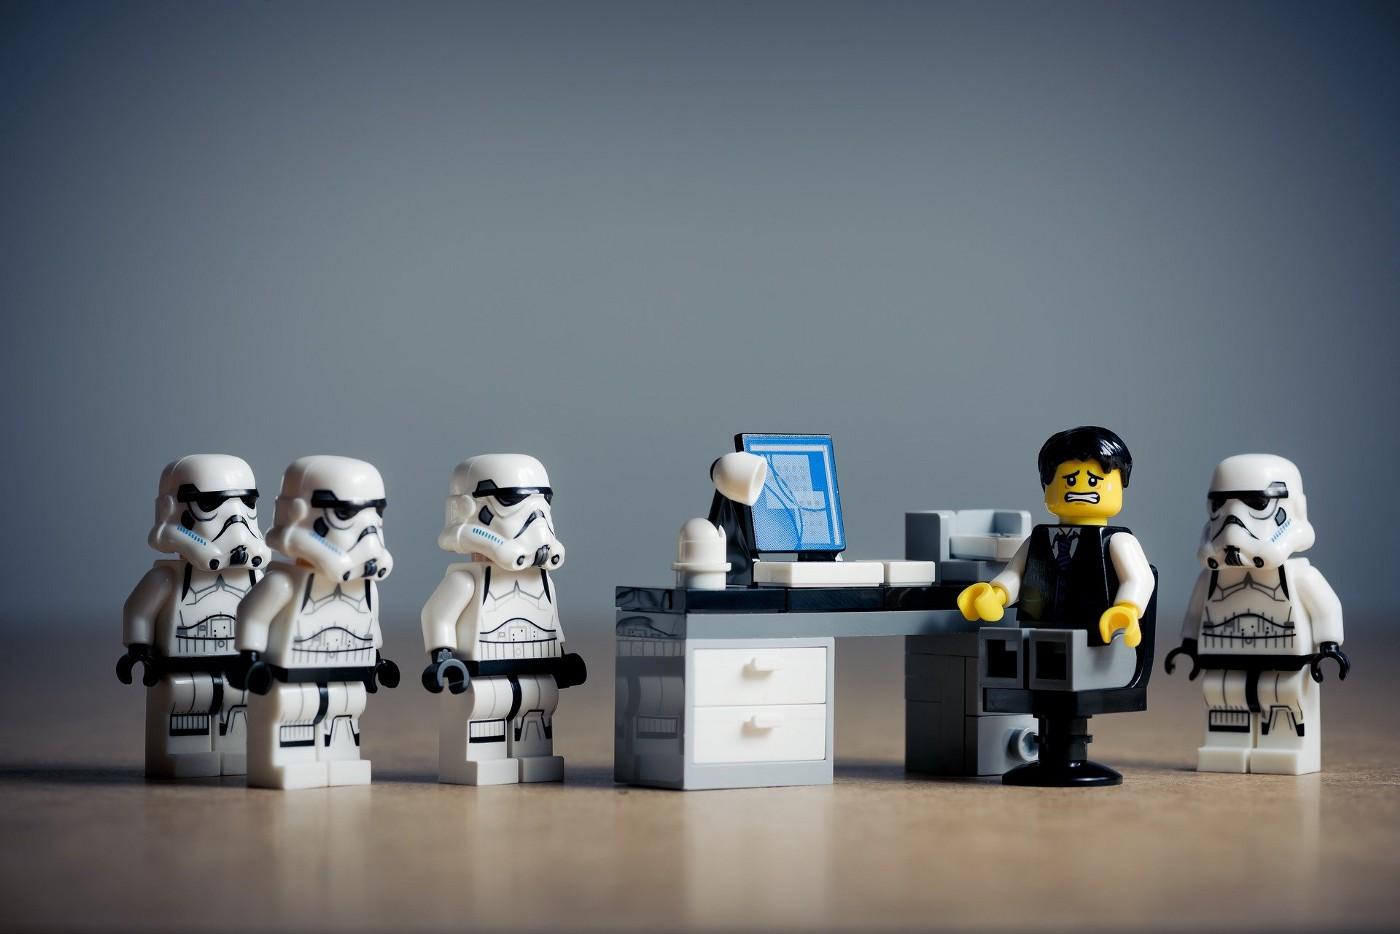 Lego figure in a suit at a desk surrounded by Lego storm troopers looking fearful